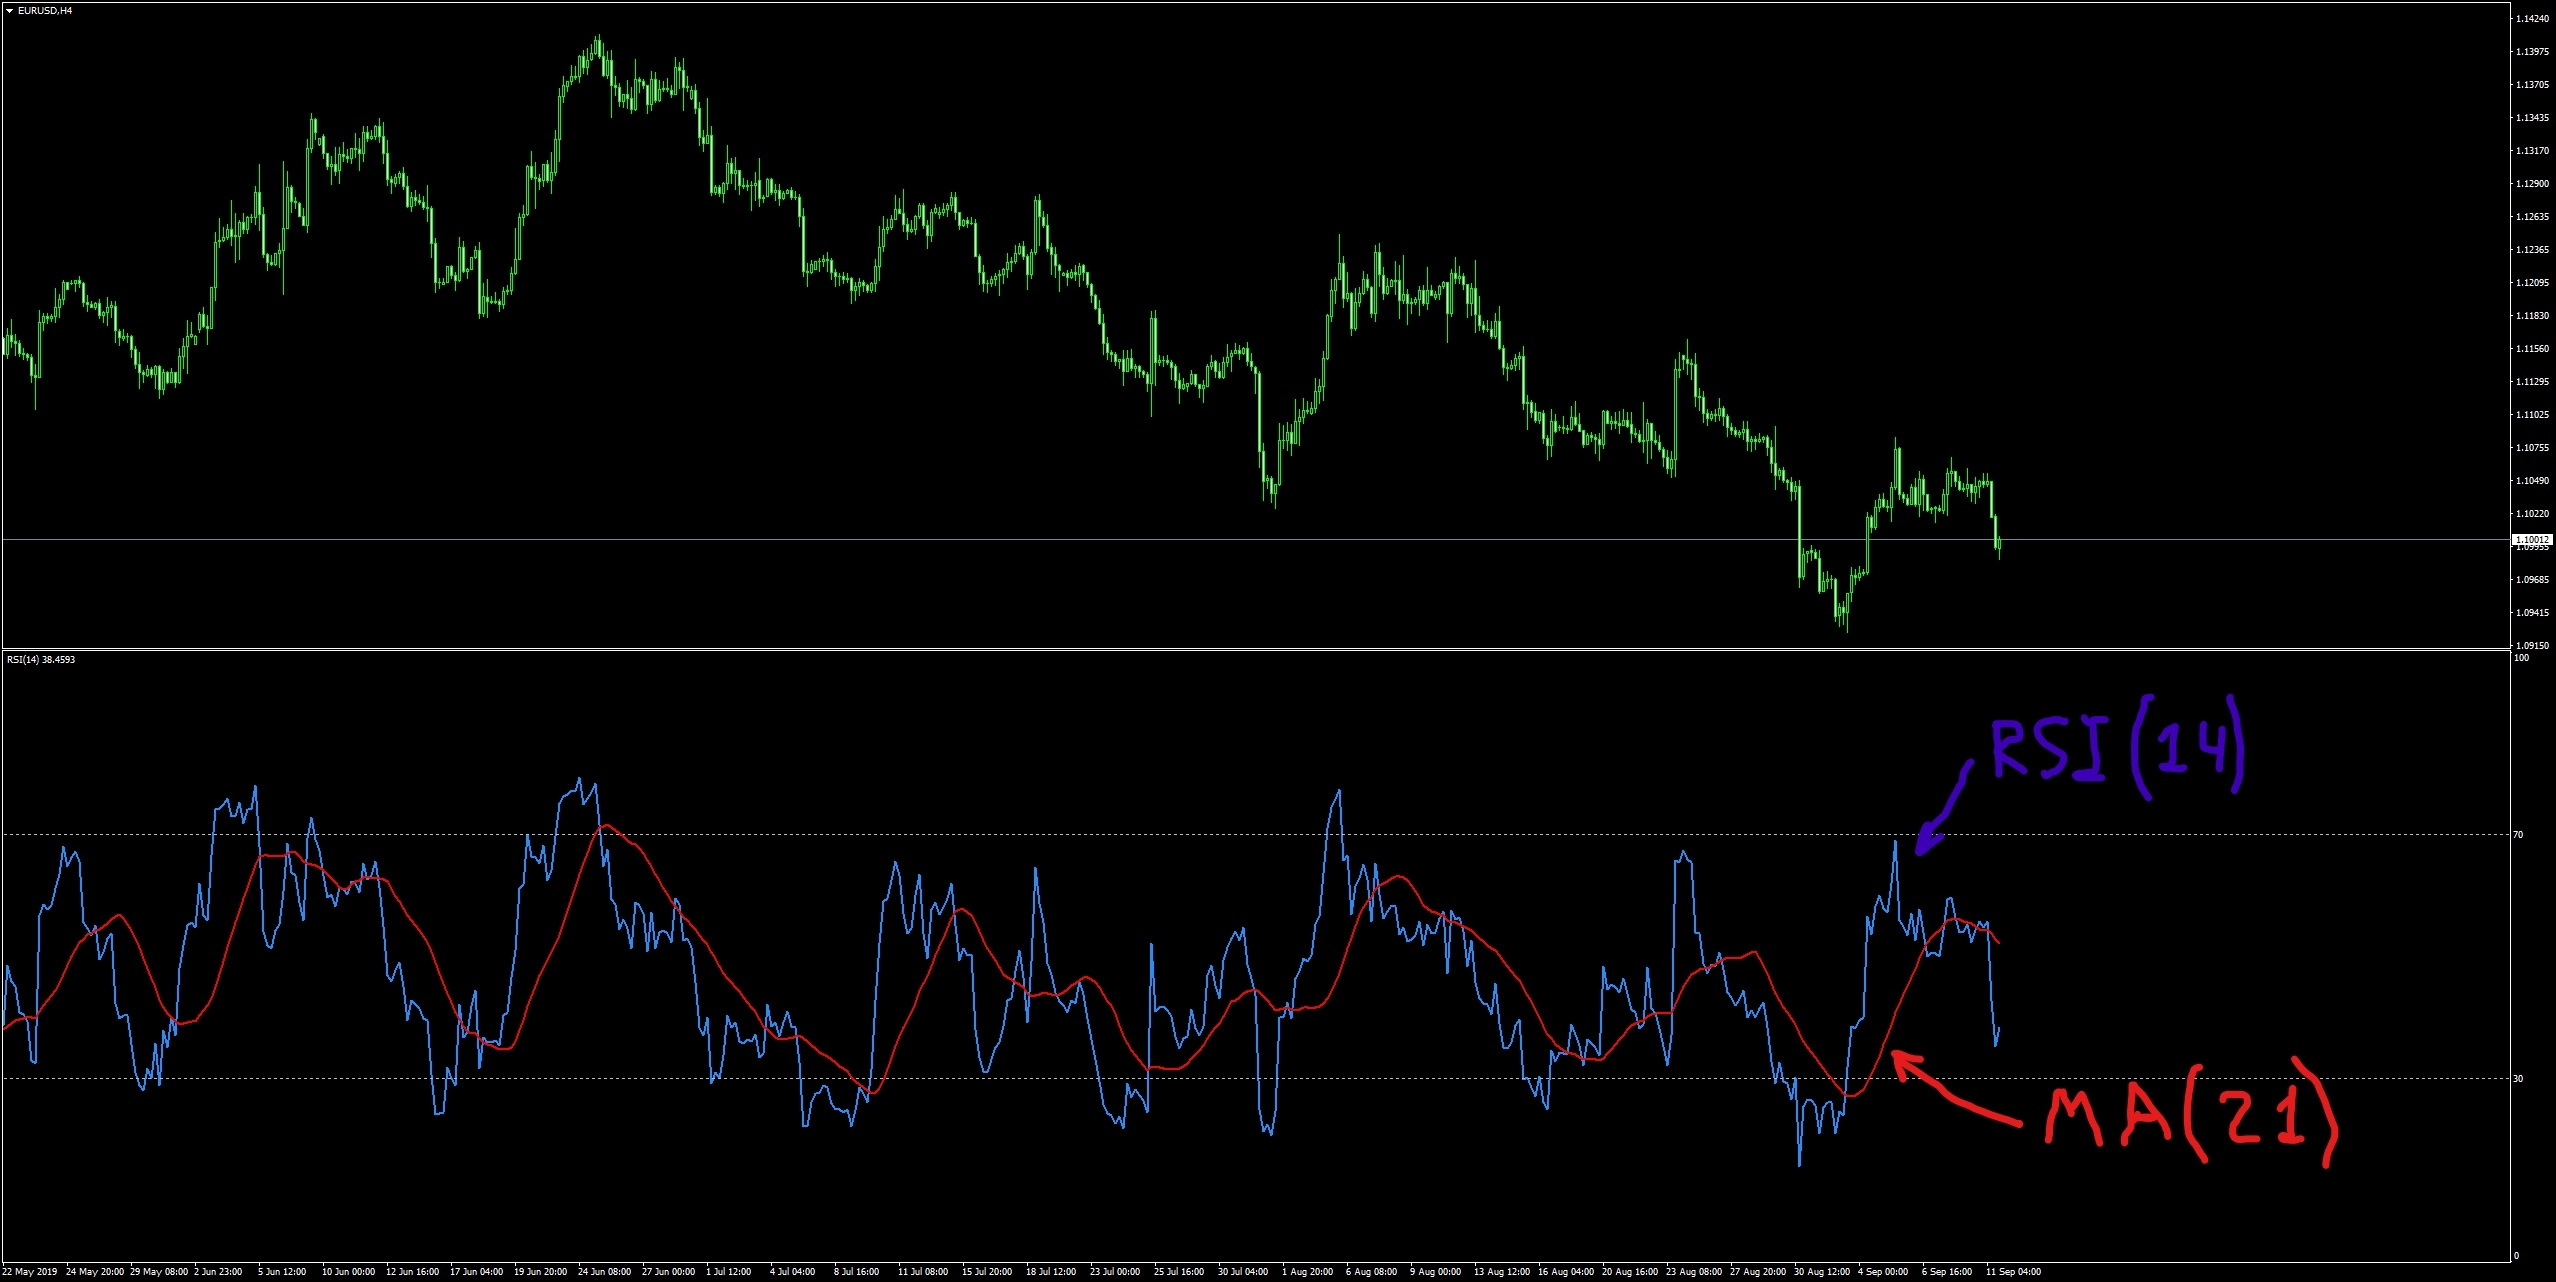 RSI Indicator and Moving Average